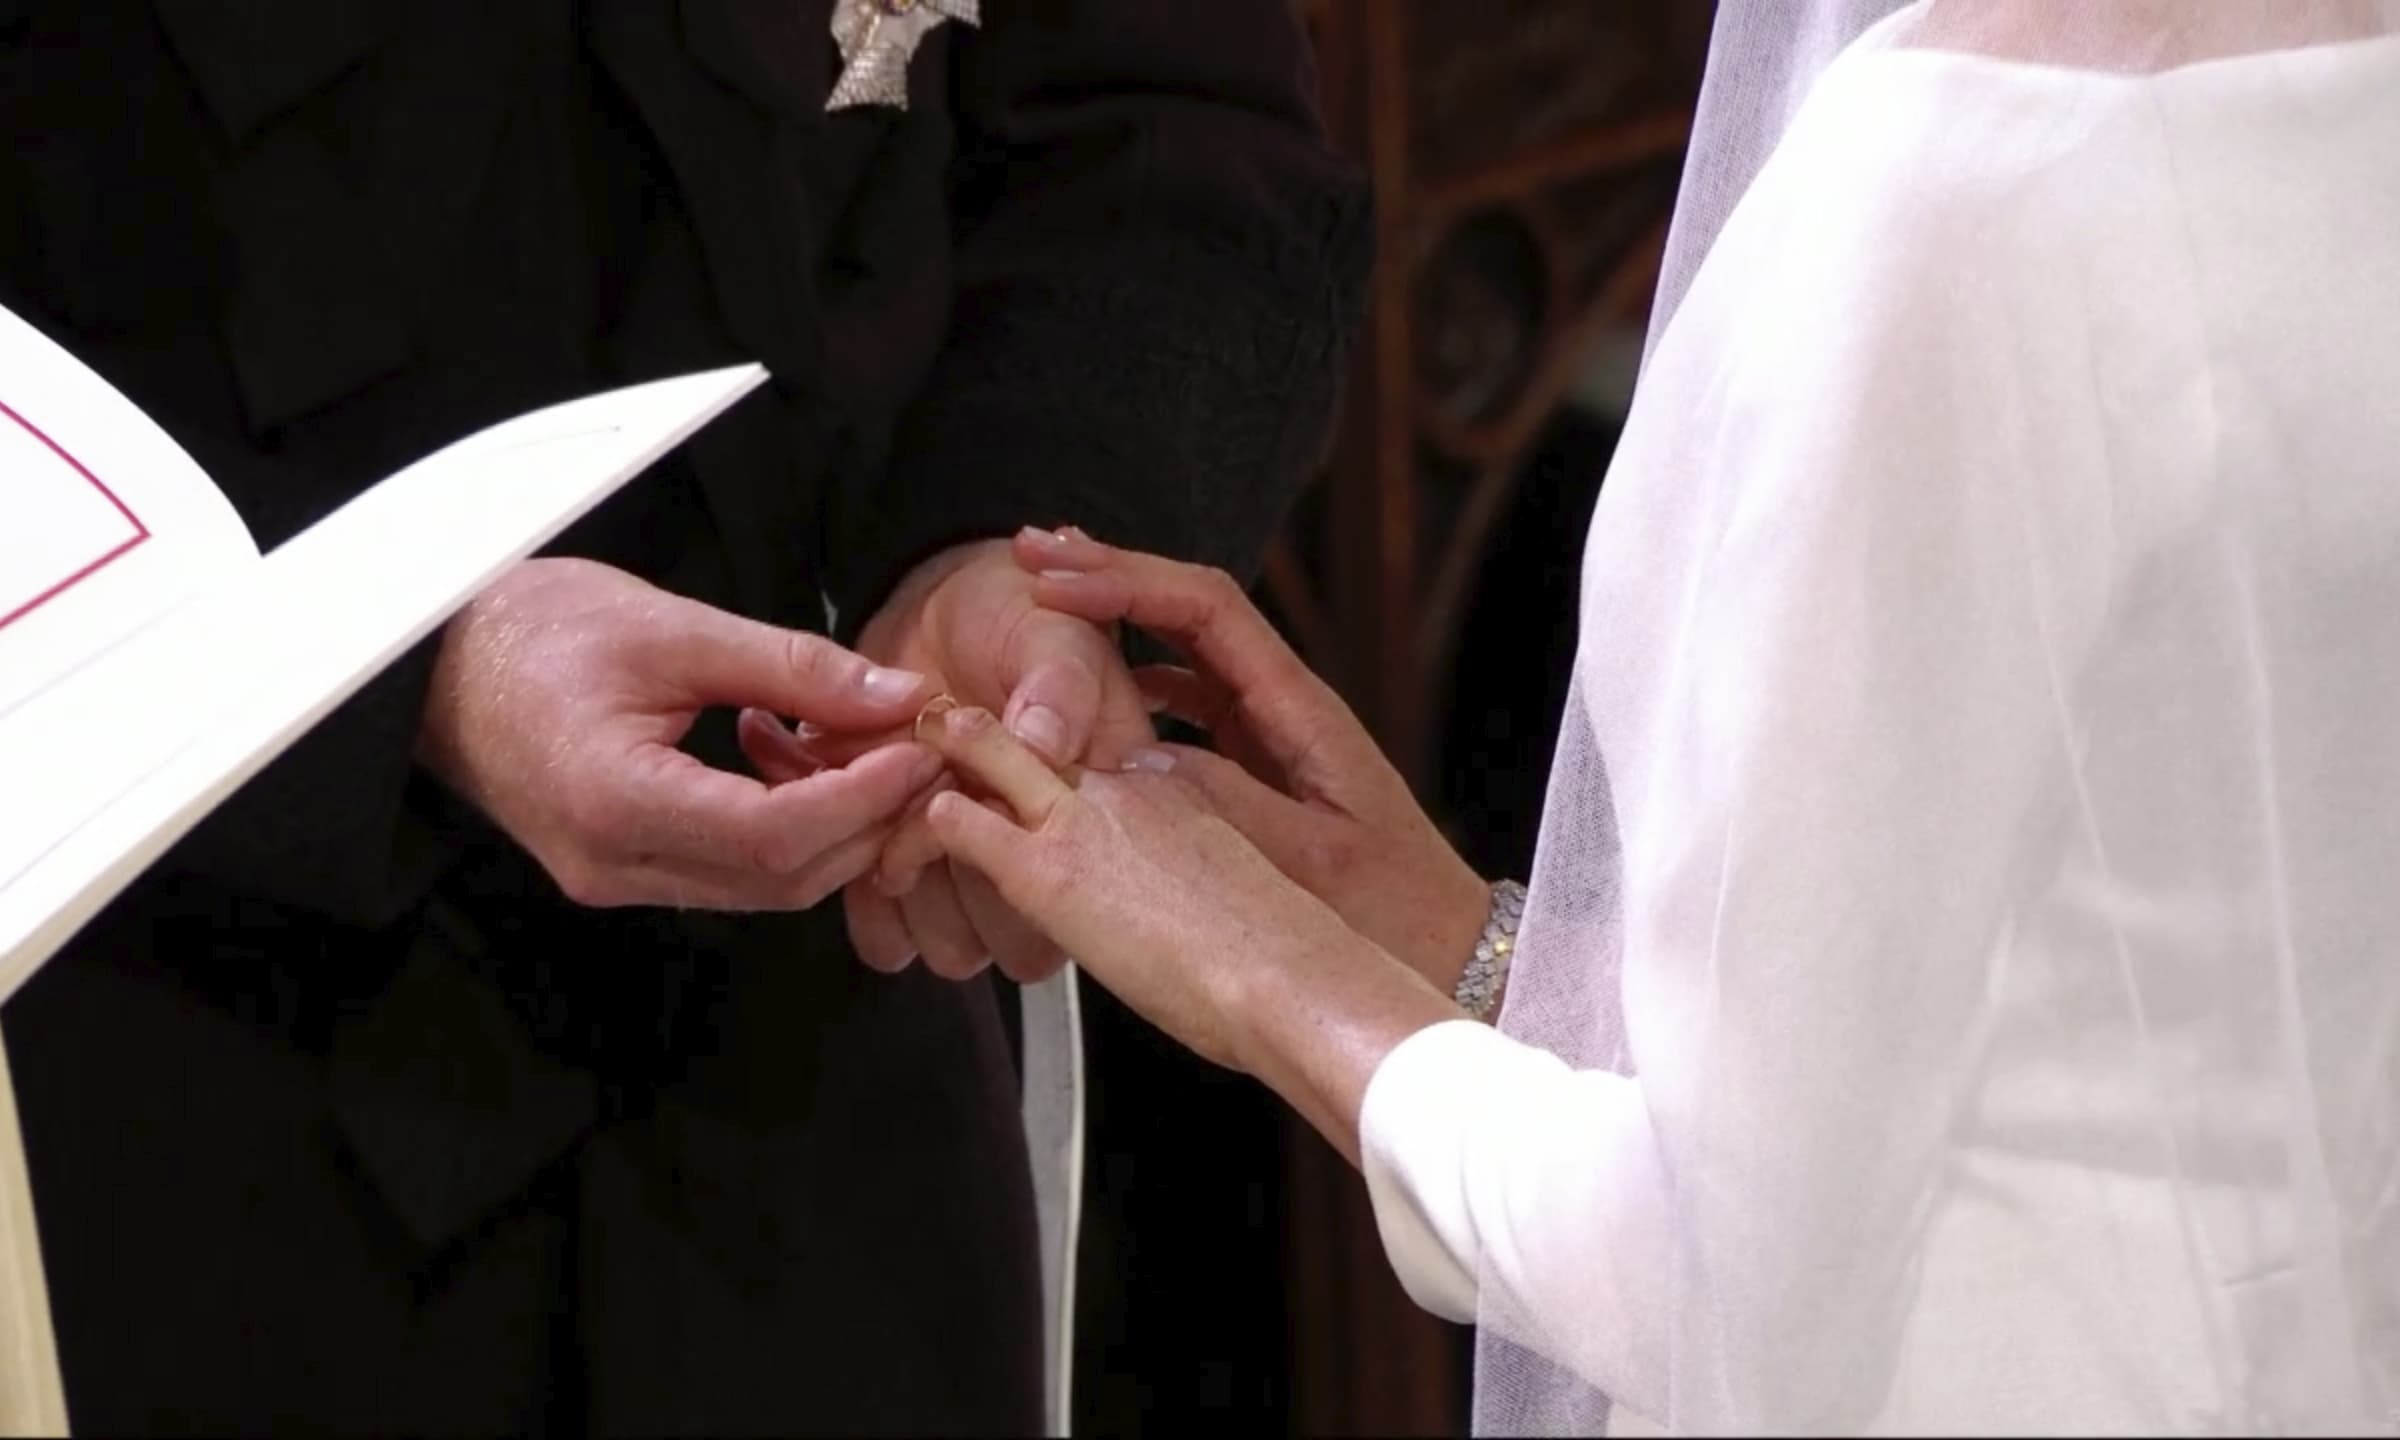 Prince Harry places a ring on Meghan Markle's finger during their wedding ceremony. — AP